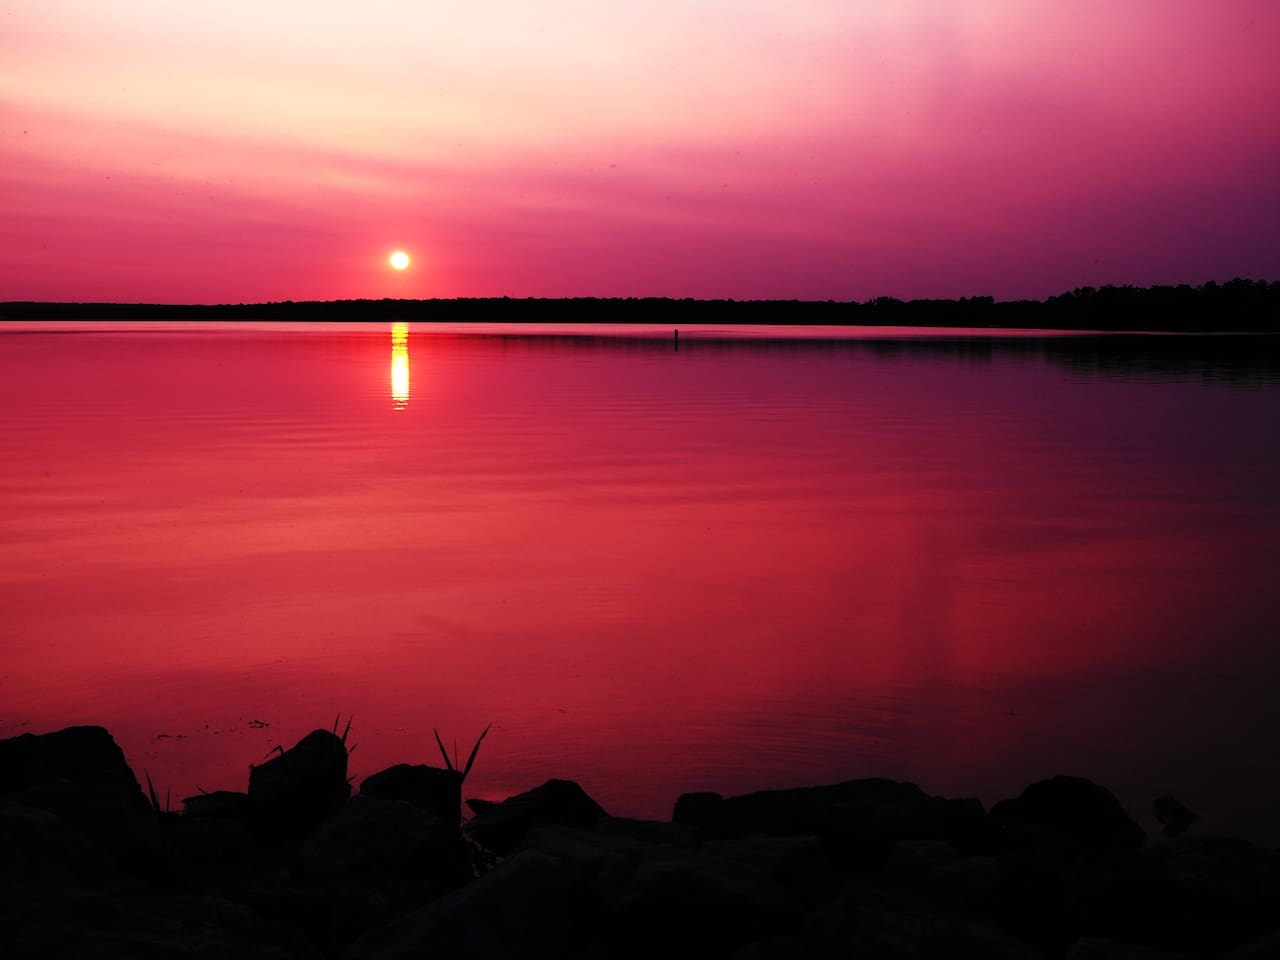 Mason Lake is a 882 acre lake located in Marquette, Adams Counties. It has a maximum depth of 9 feet. Visitors have access to the lake from public boat landings. Fish include Musky, Panfish, Largemouth Bass, Northern Pike and Catfish.  Epic Sunsets!